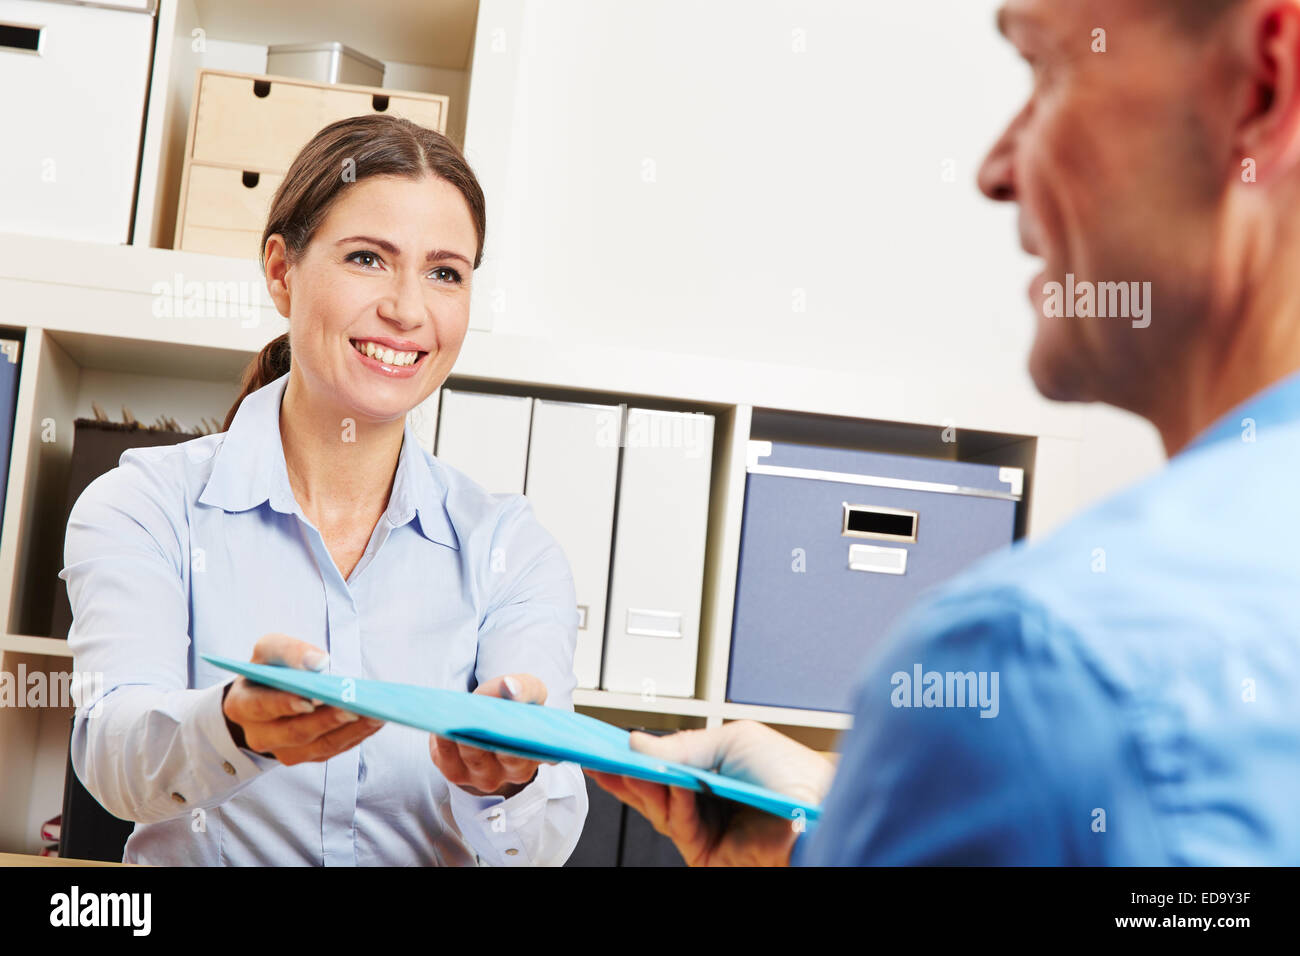 Man At Job Application Interview In Office Handing Out Rsum Stock